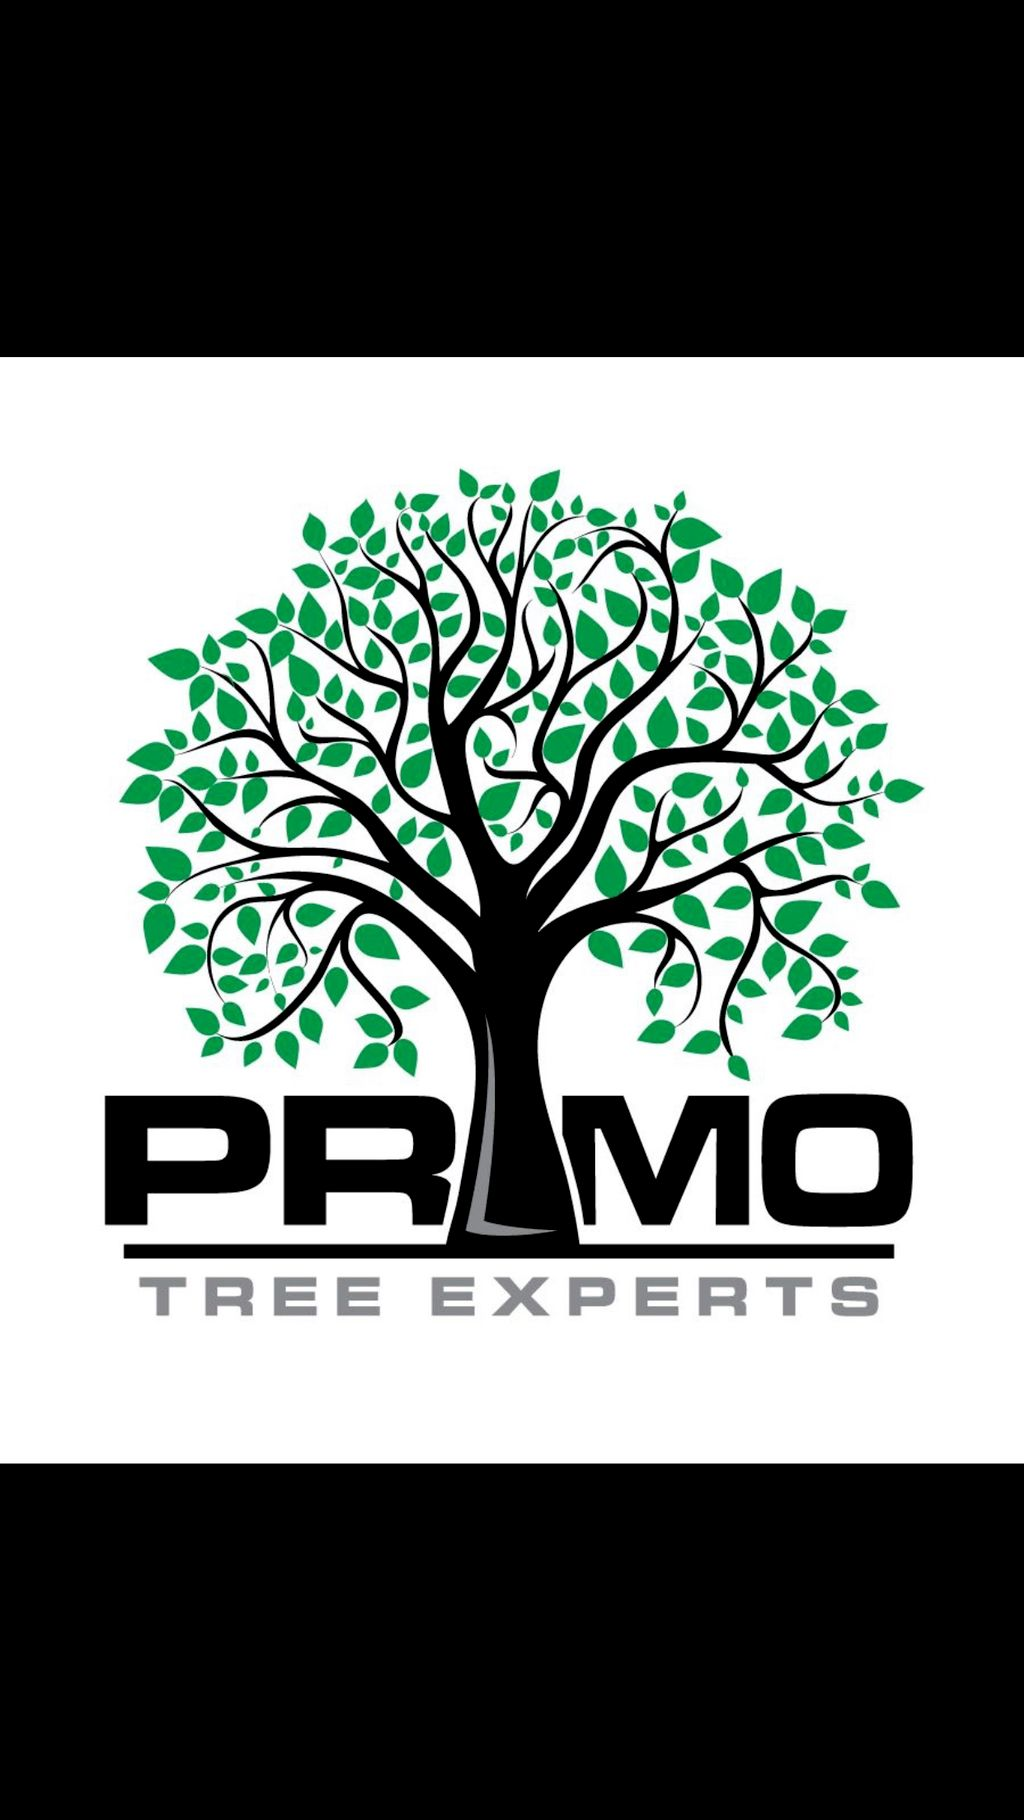 Primo Tree Experts, LLC